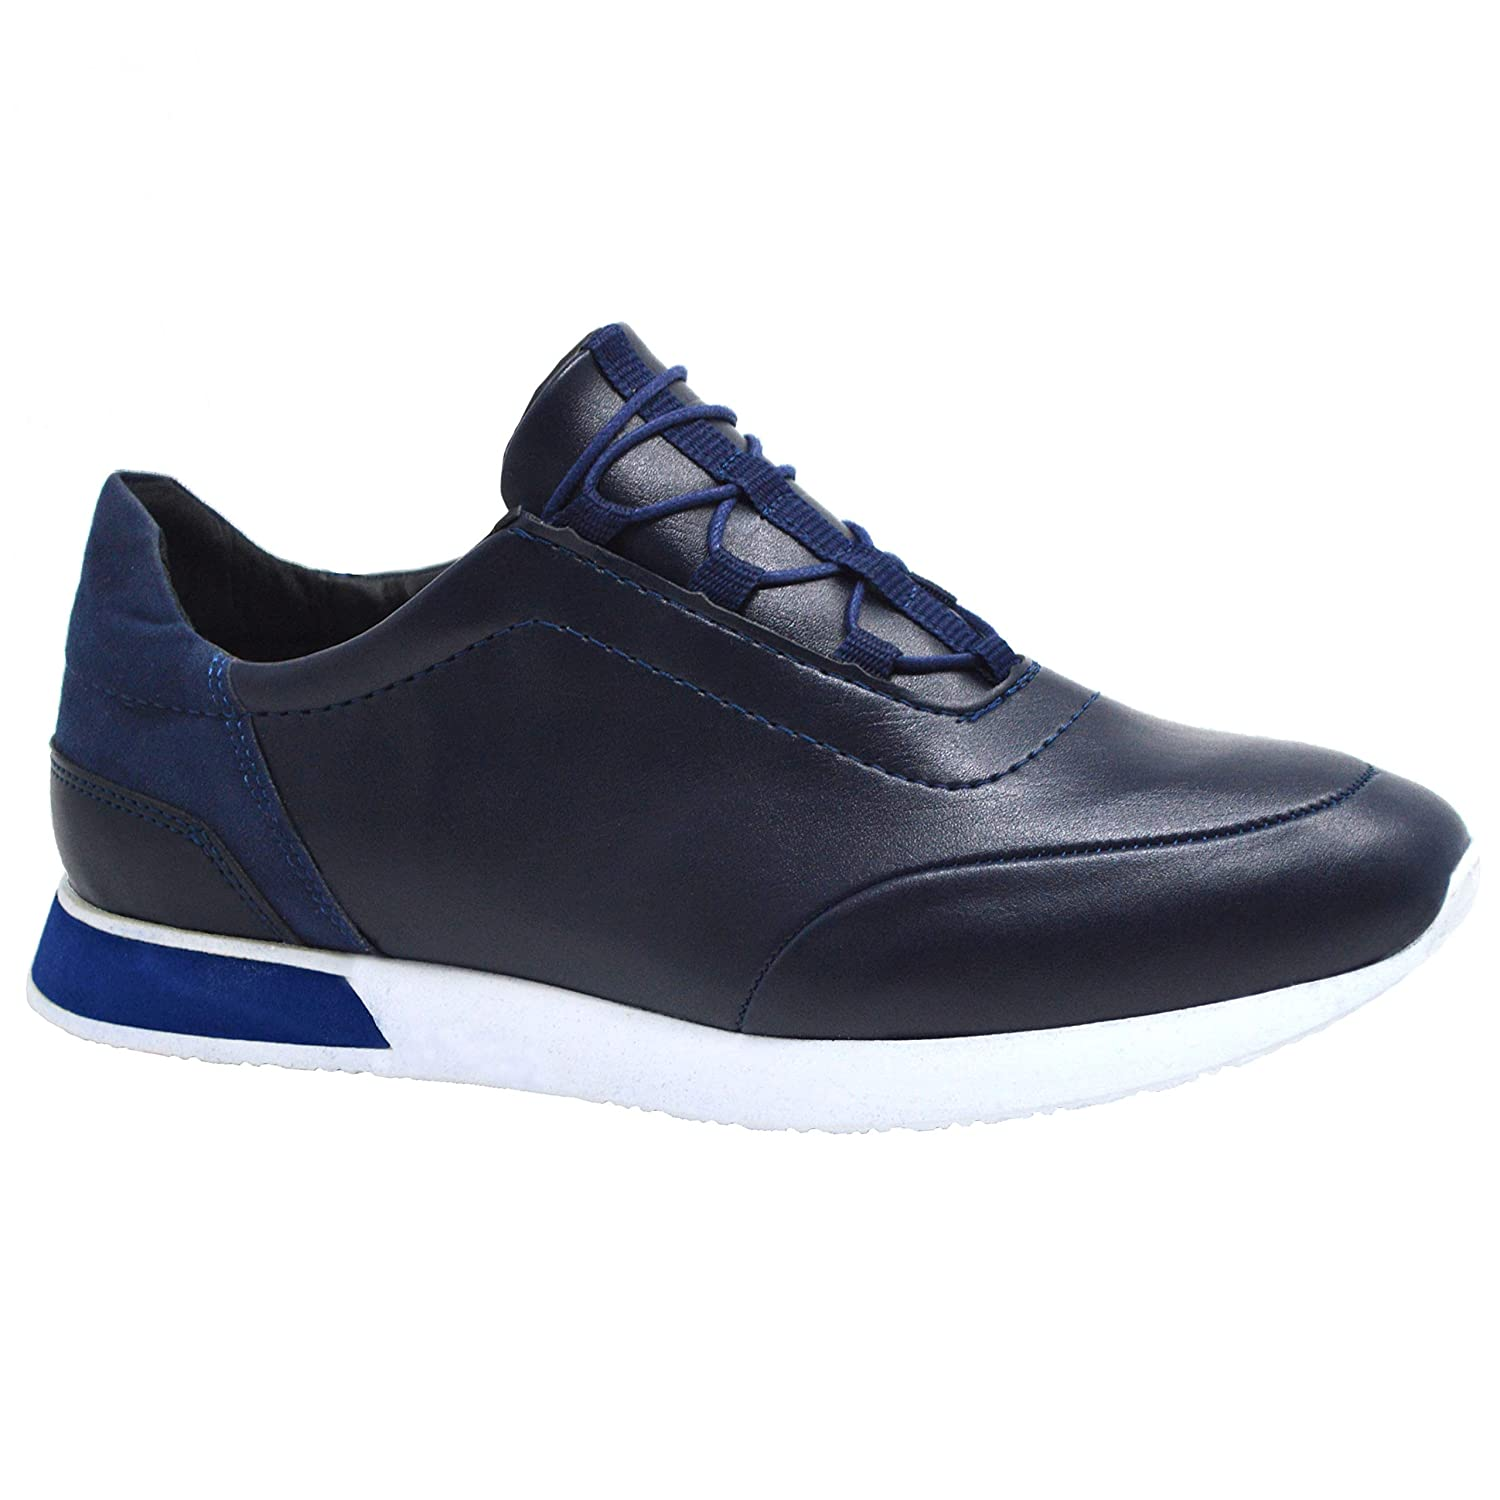 Mens Designer Trainers Sneakers Lace Up